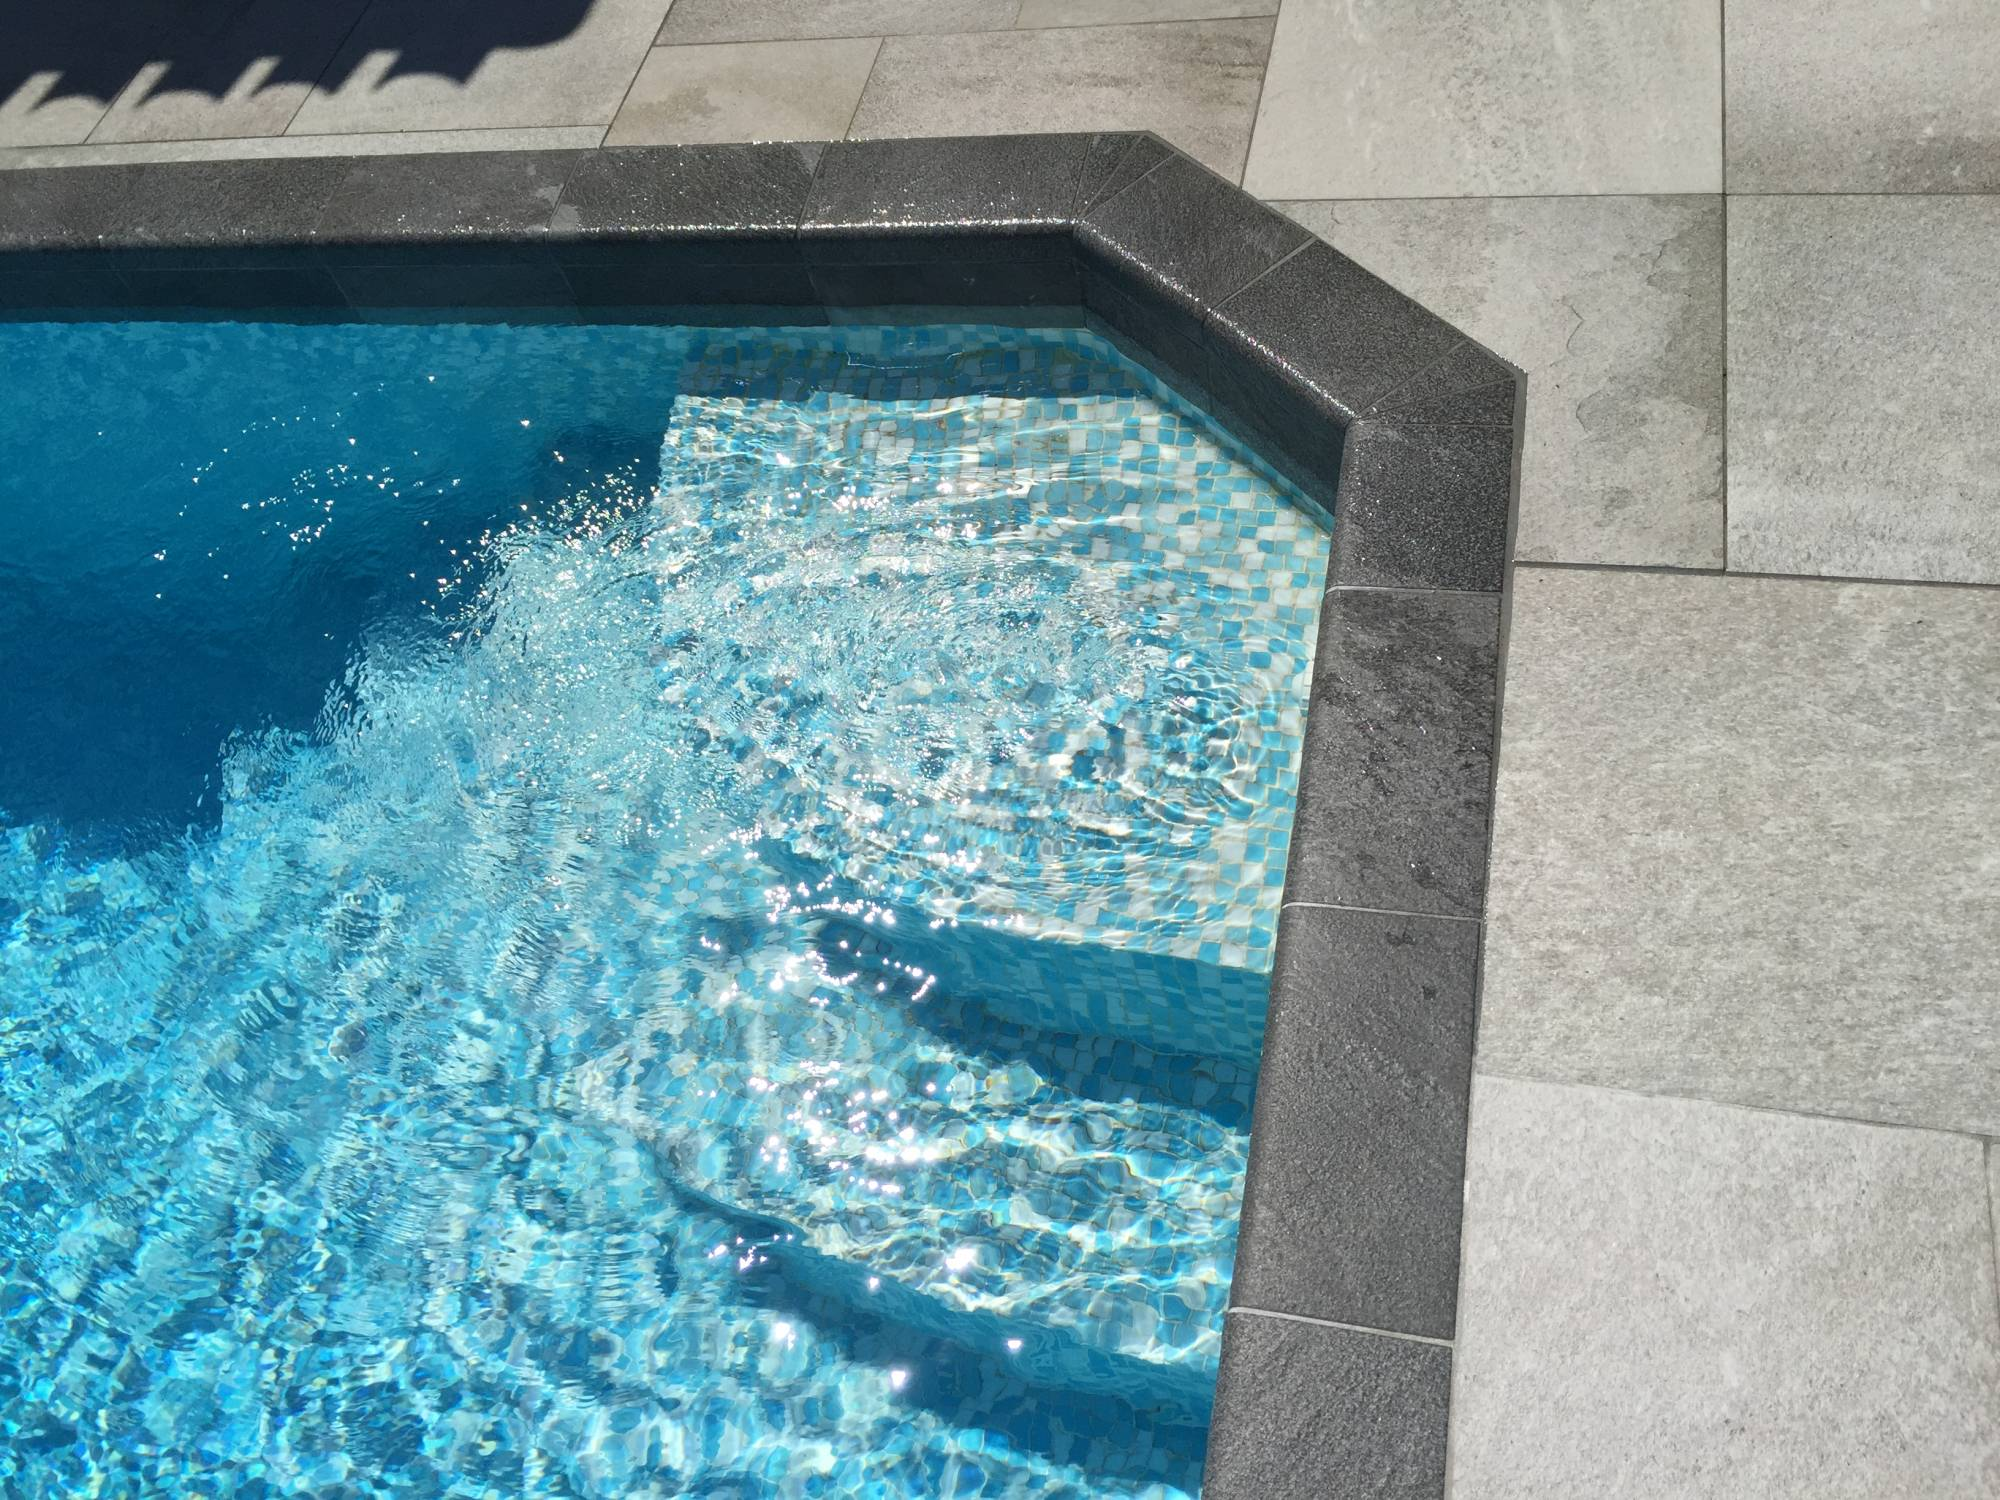 Contour de piscine en carrelage anti d rapant aix en for Piscine carrelage gris